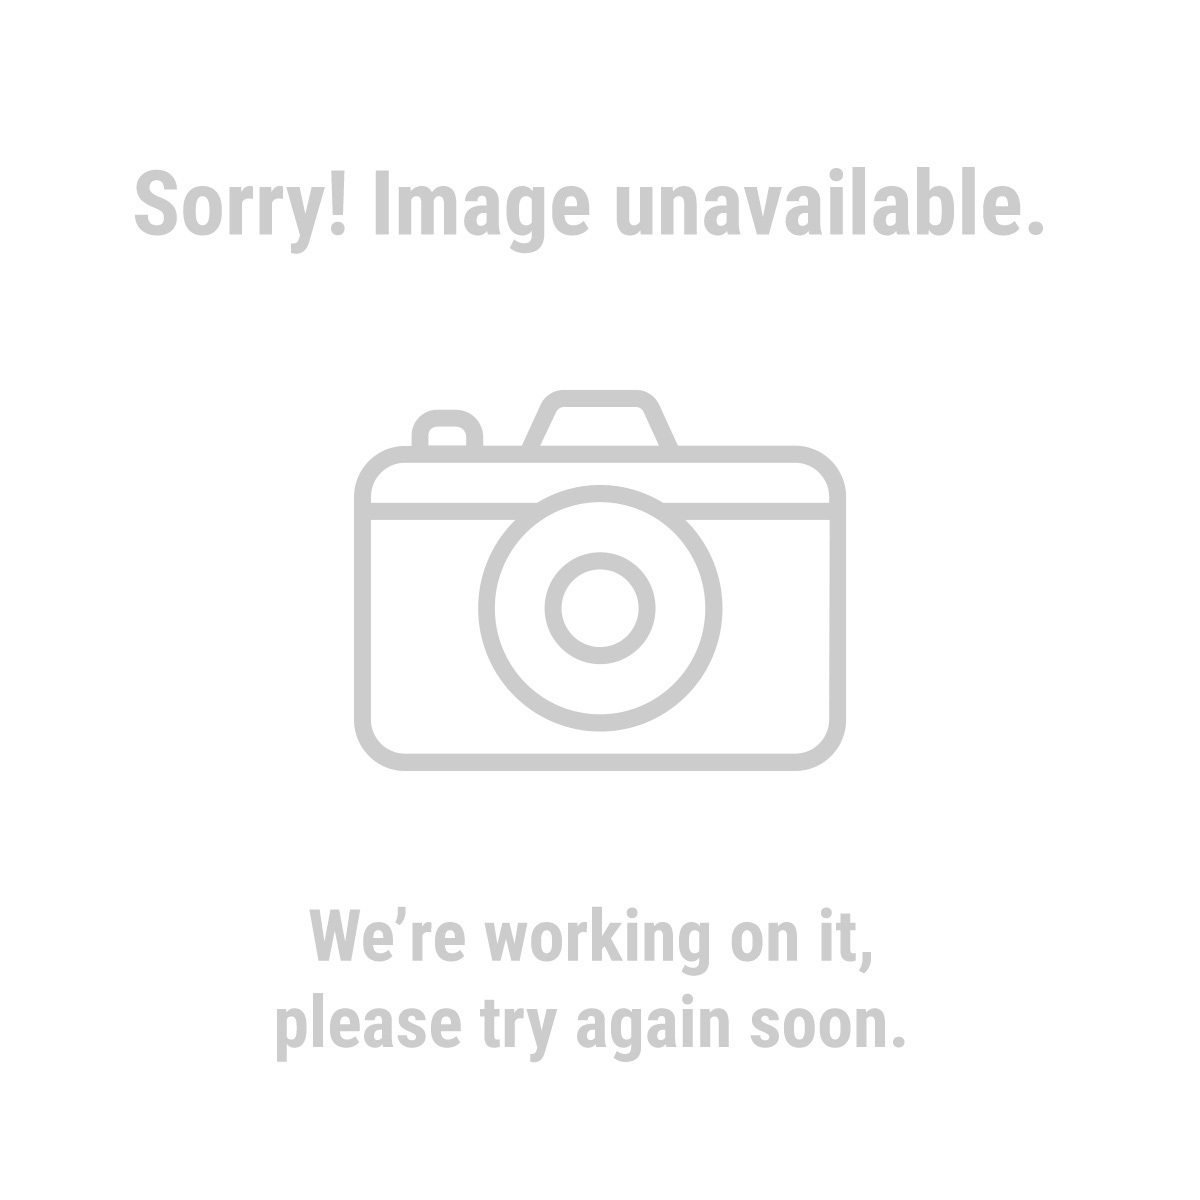 Chicago Electric Welding 62745 70 Amp-AC, 120 Volt, Stick Welder